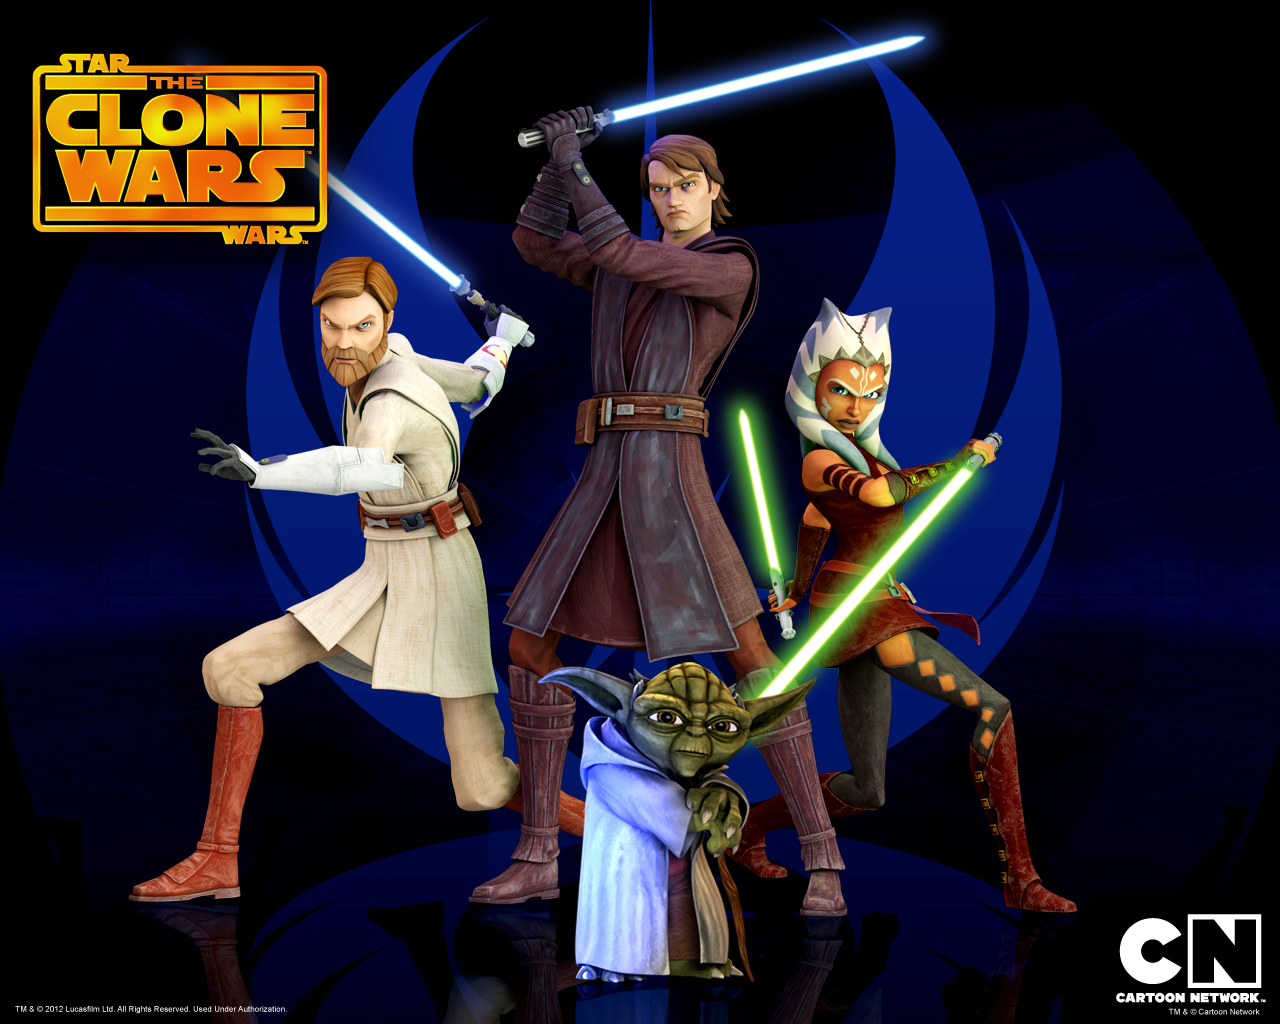 Star Wars The Clone Wars Wallpaper: The Star Wars Defender: Marzo 2013